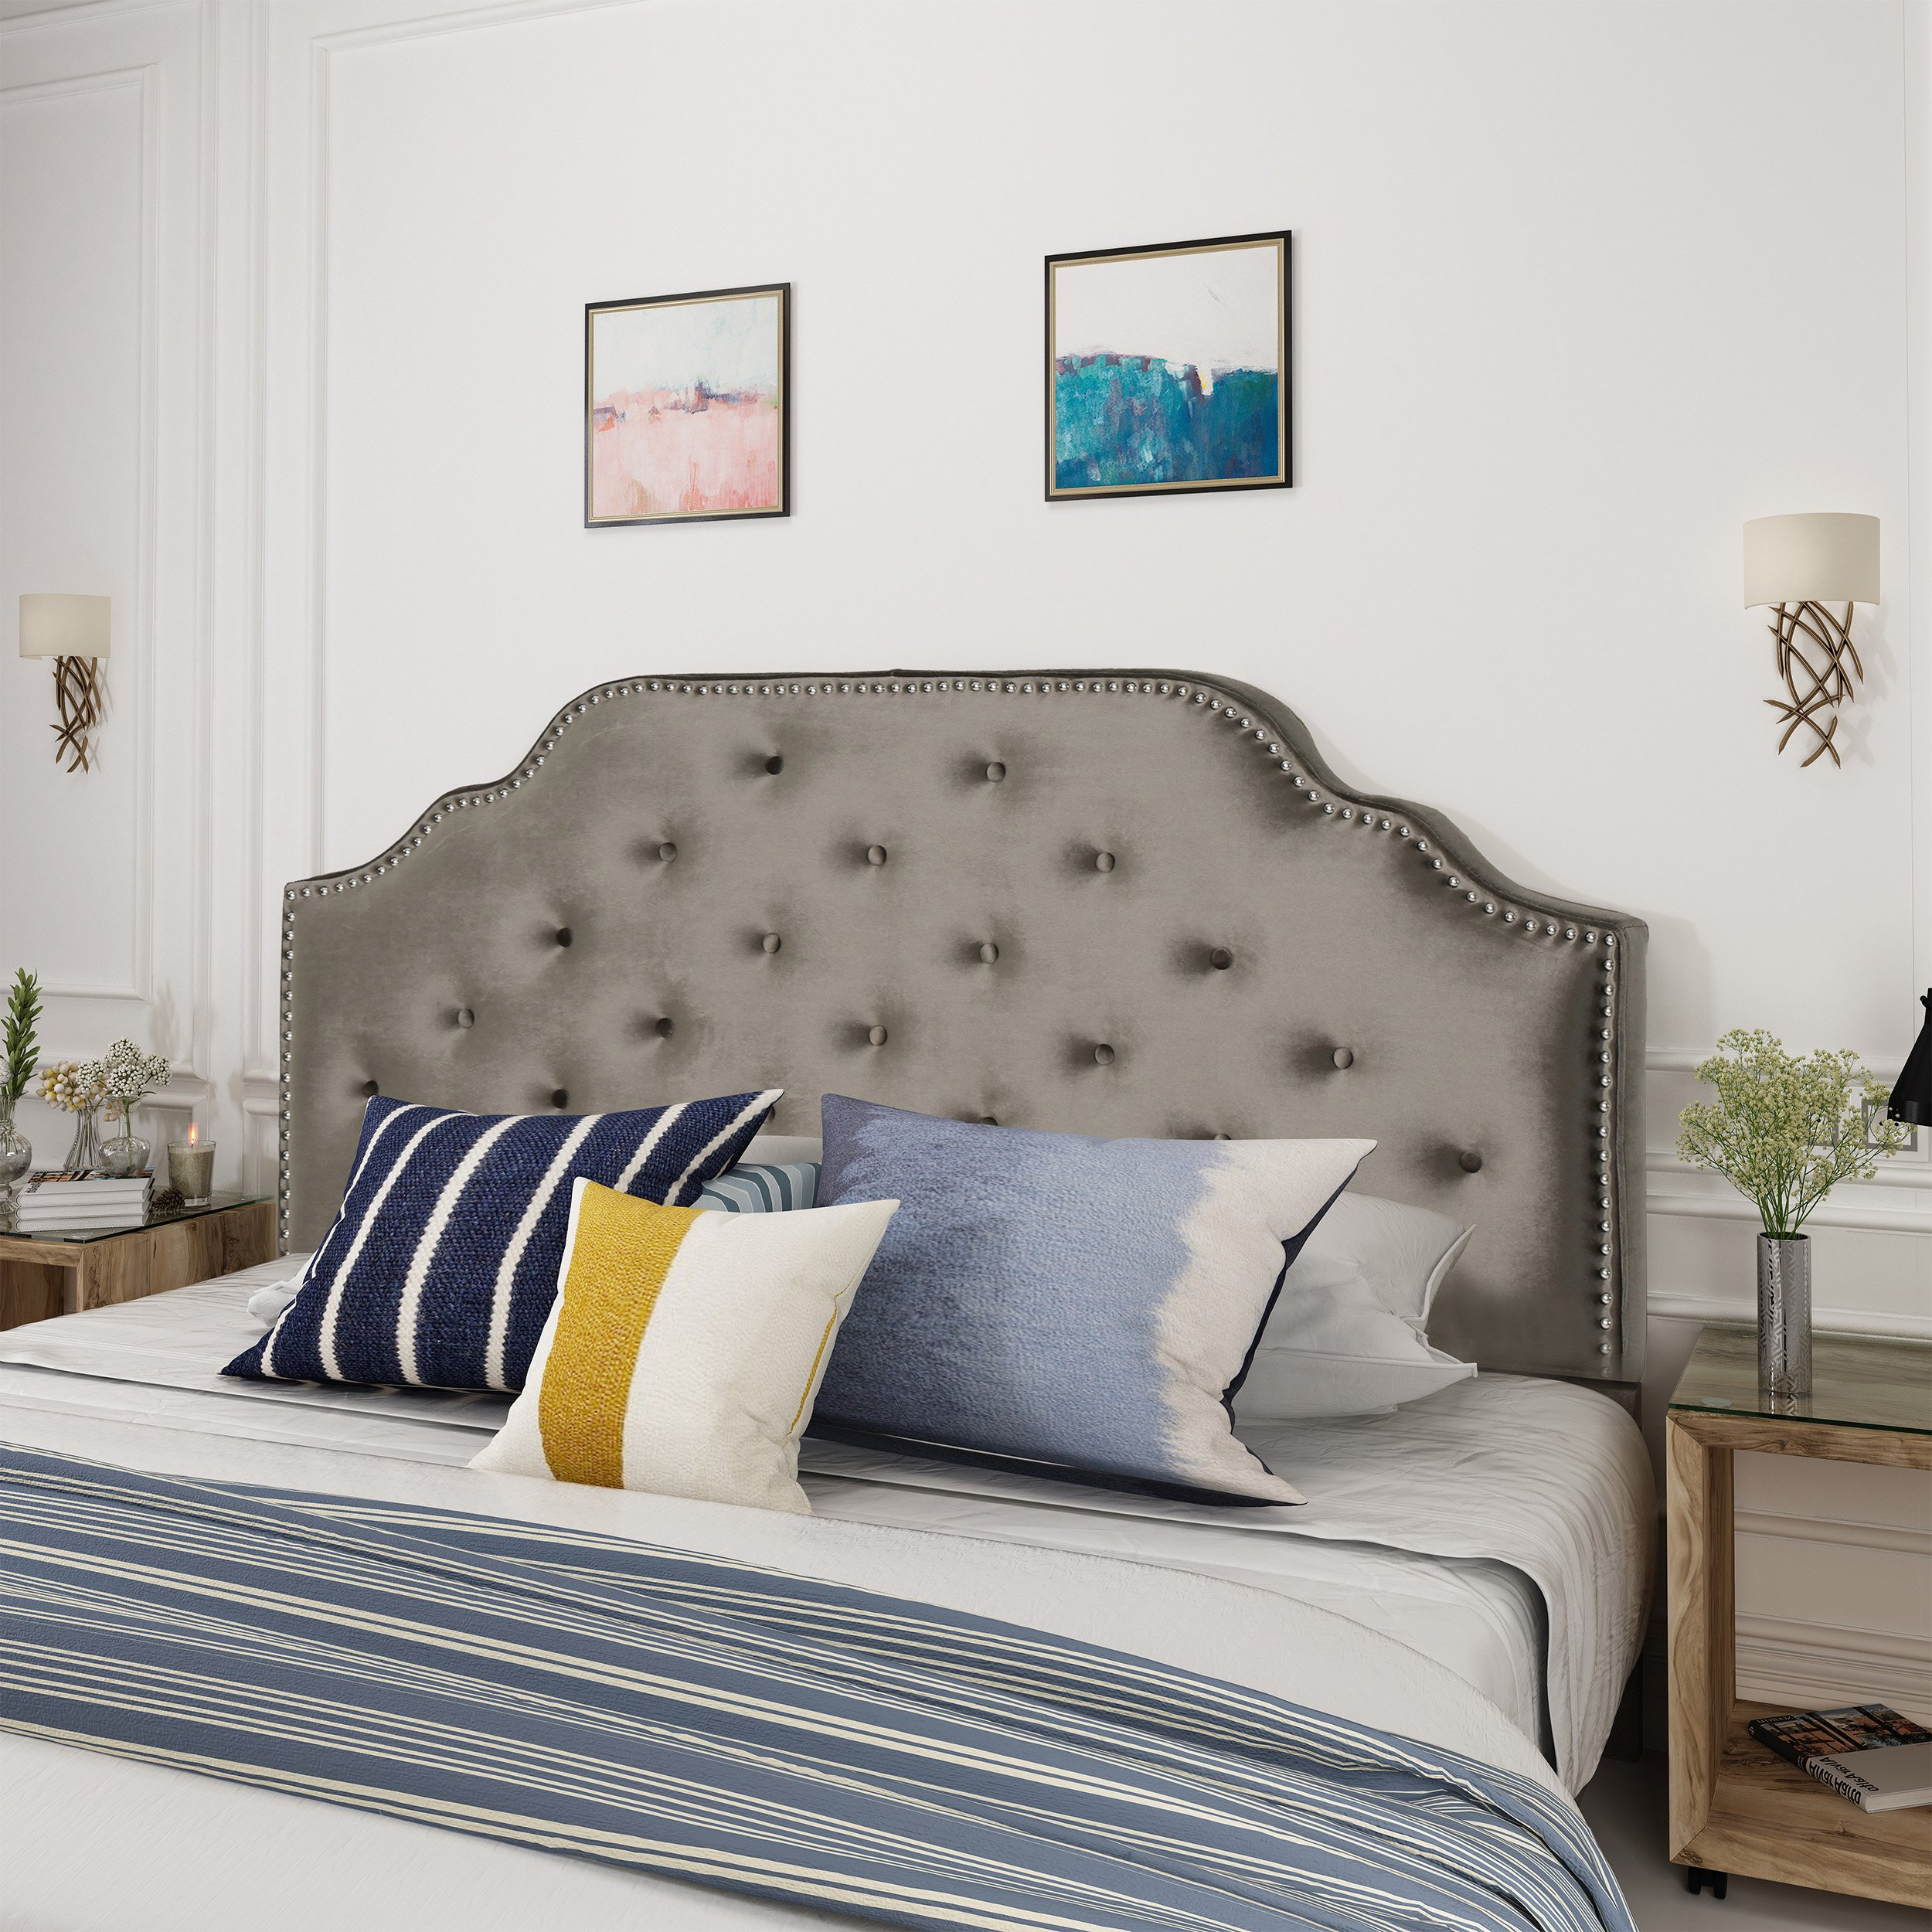 Falcon Glam Velvet Full/Queen Headboard, Gray and Black